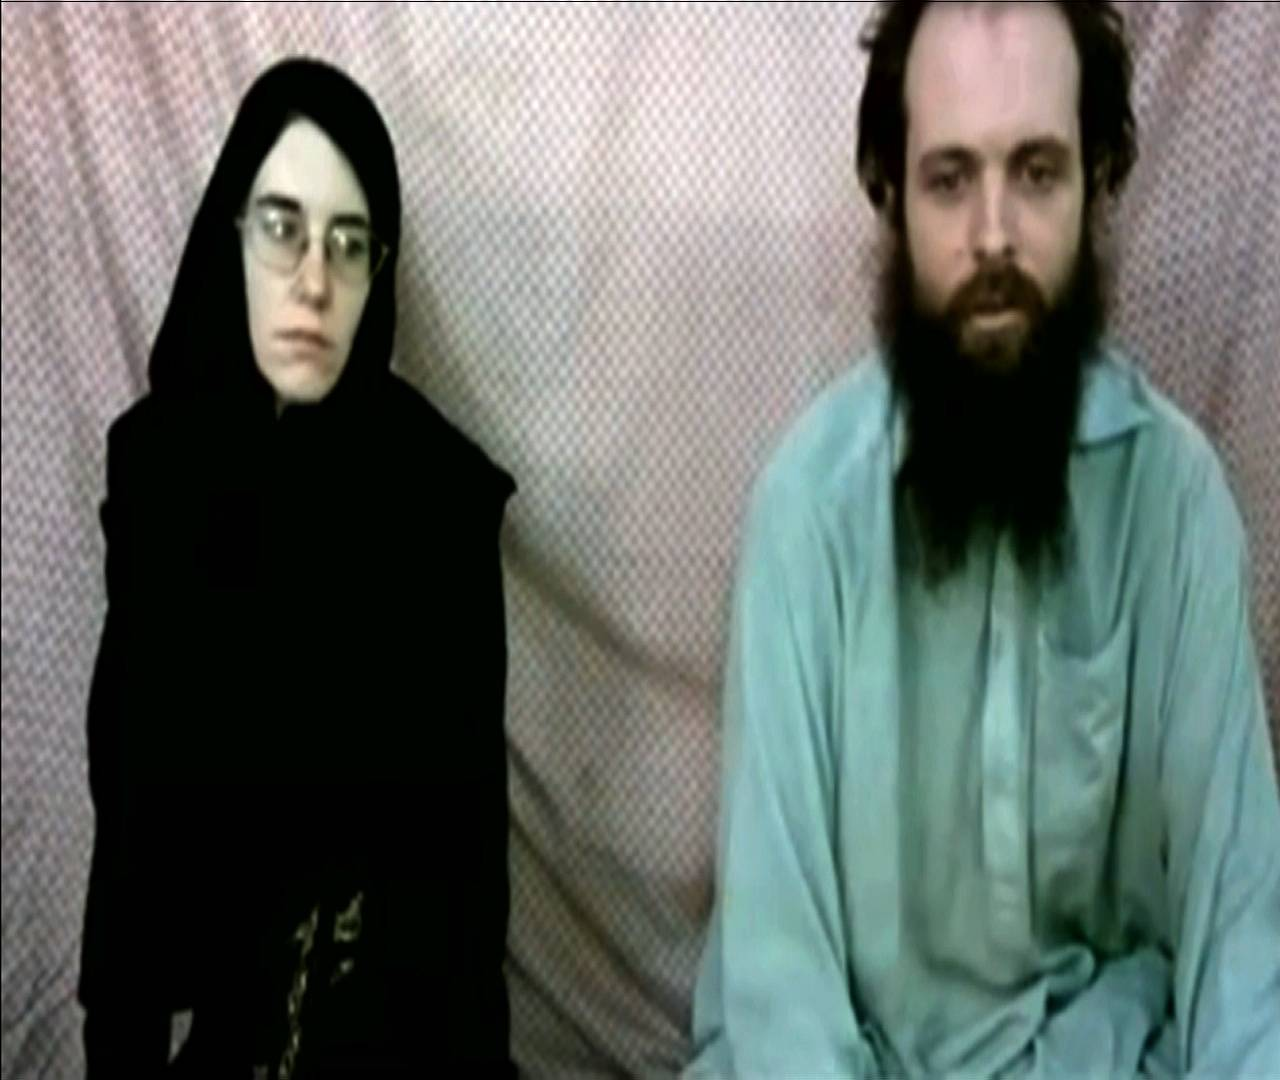 Families release video plea of couple in Afghanistan